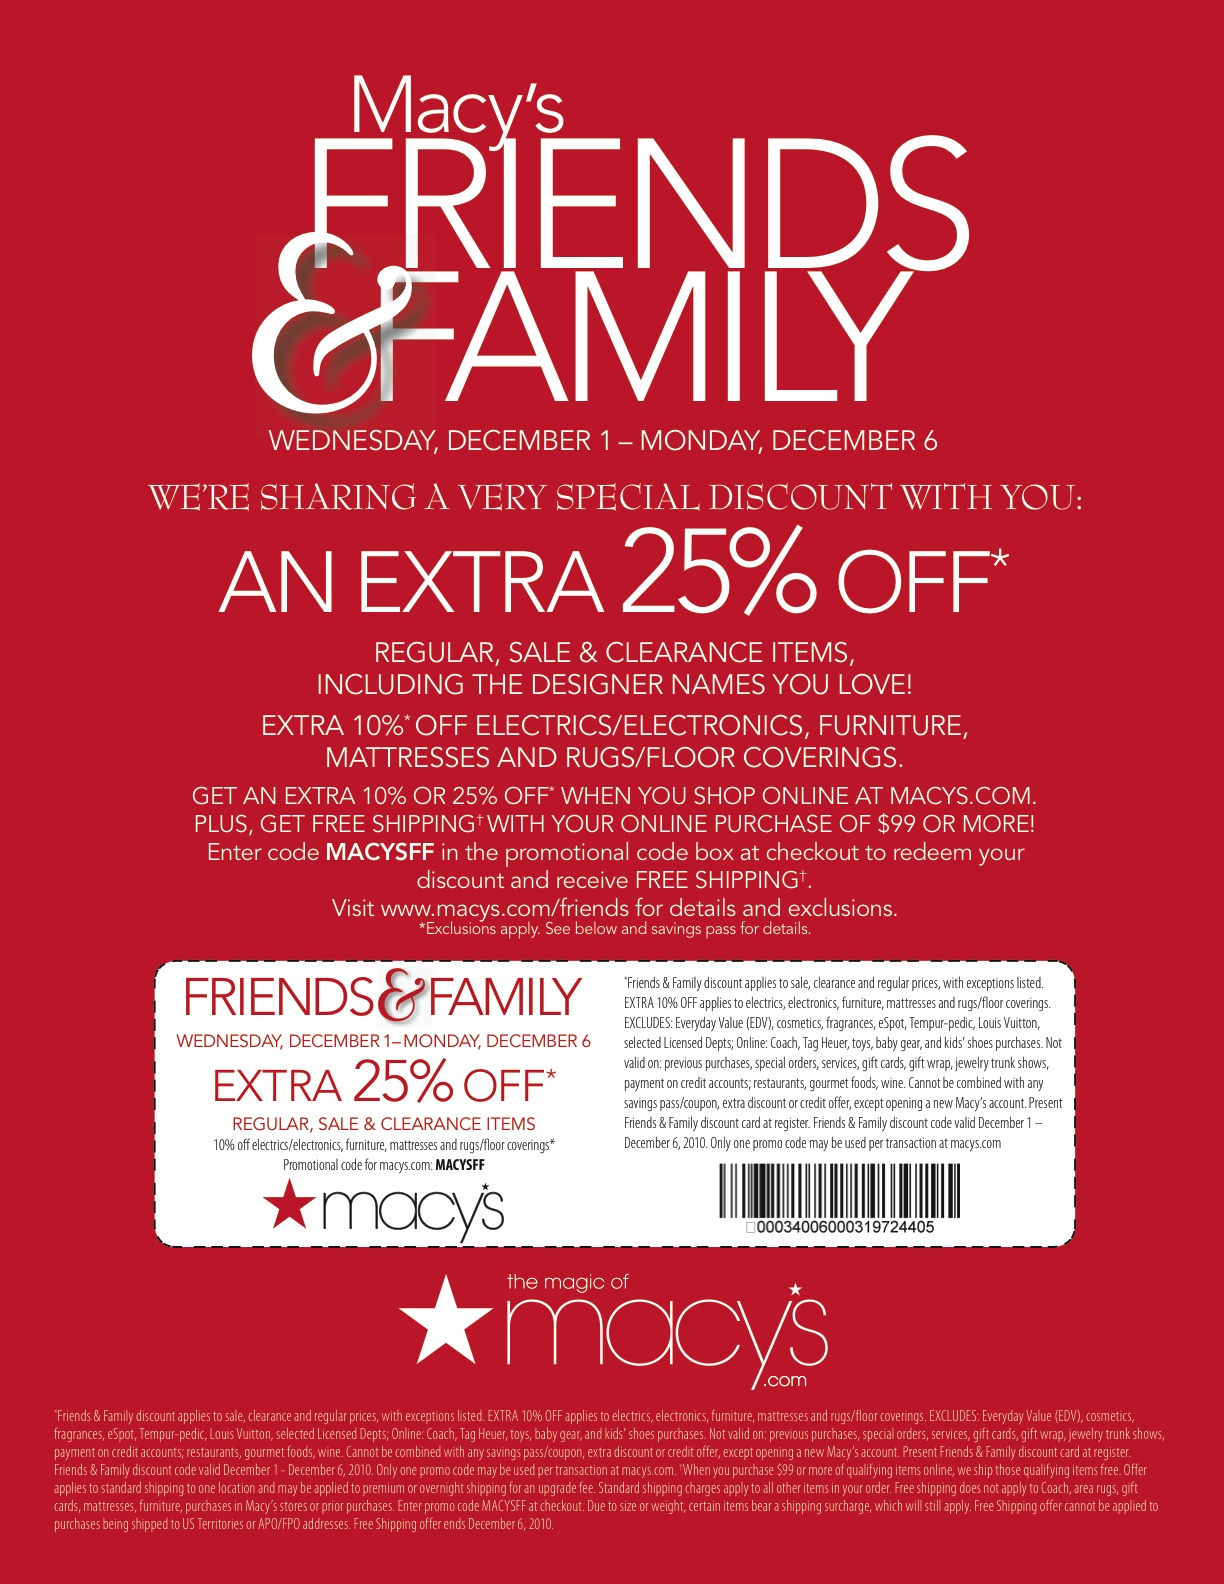 a7633d22a Macy's Friends & Family coupon...25% off! - Fun Cheap or Free